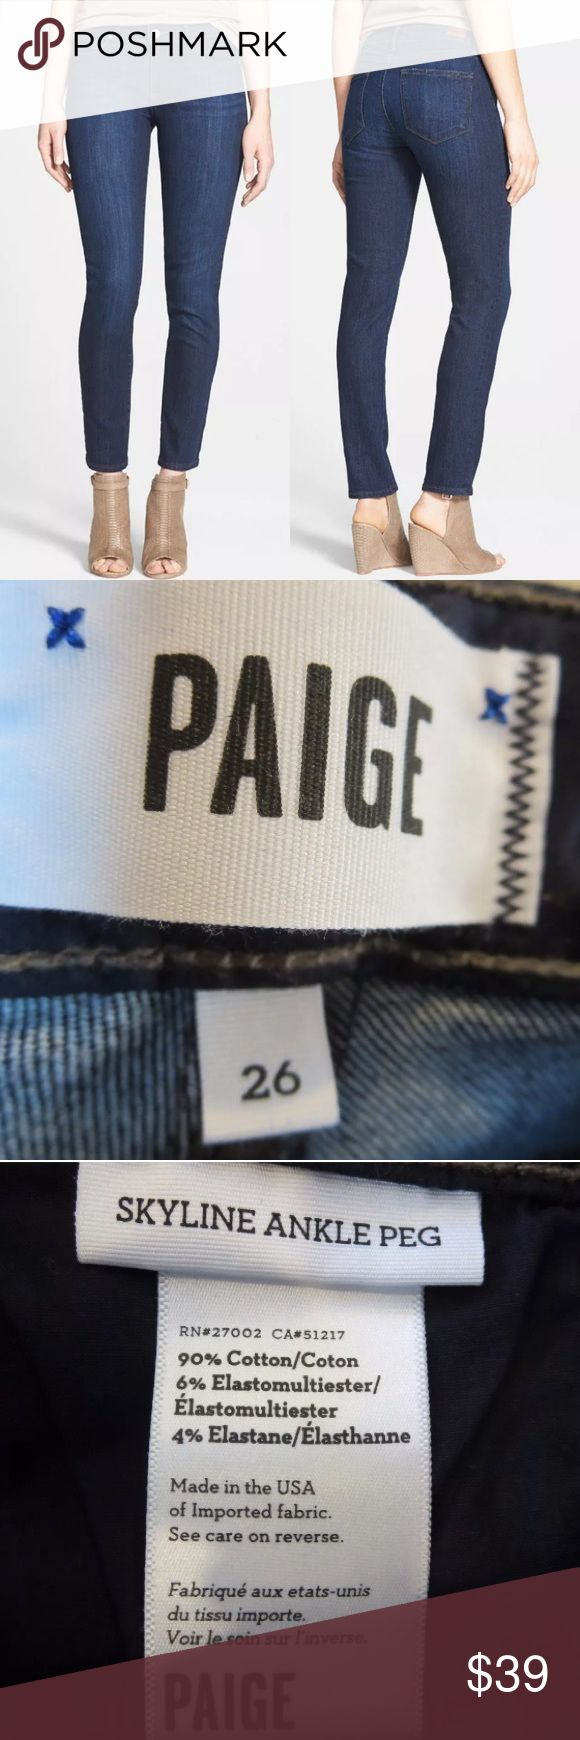 🆕List! Paige Skyline Ankle Peg Jeans! NEW! Palmo medium wash. Waist measures 14.25 inches across. Rise 8 inches. Leg opening 11.5 inches. Inseam 29 inches. New with tags - defect - some stretching at front hips. PAIGE Jeans Skinny